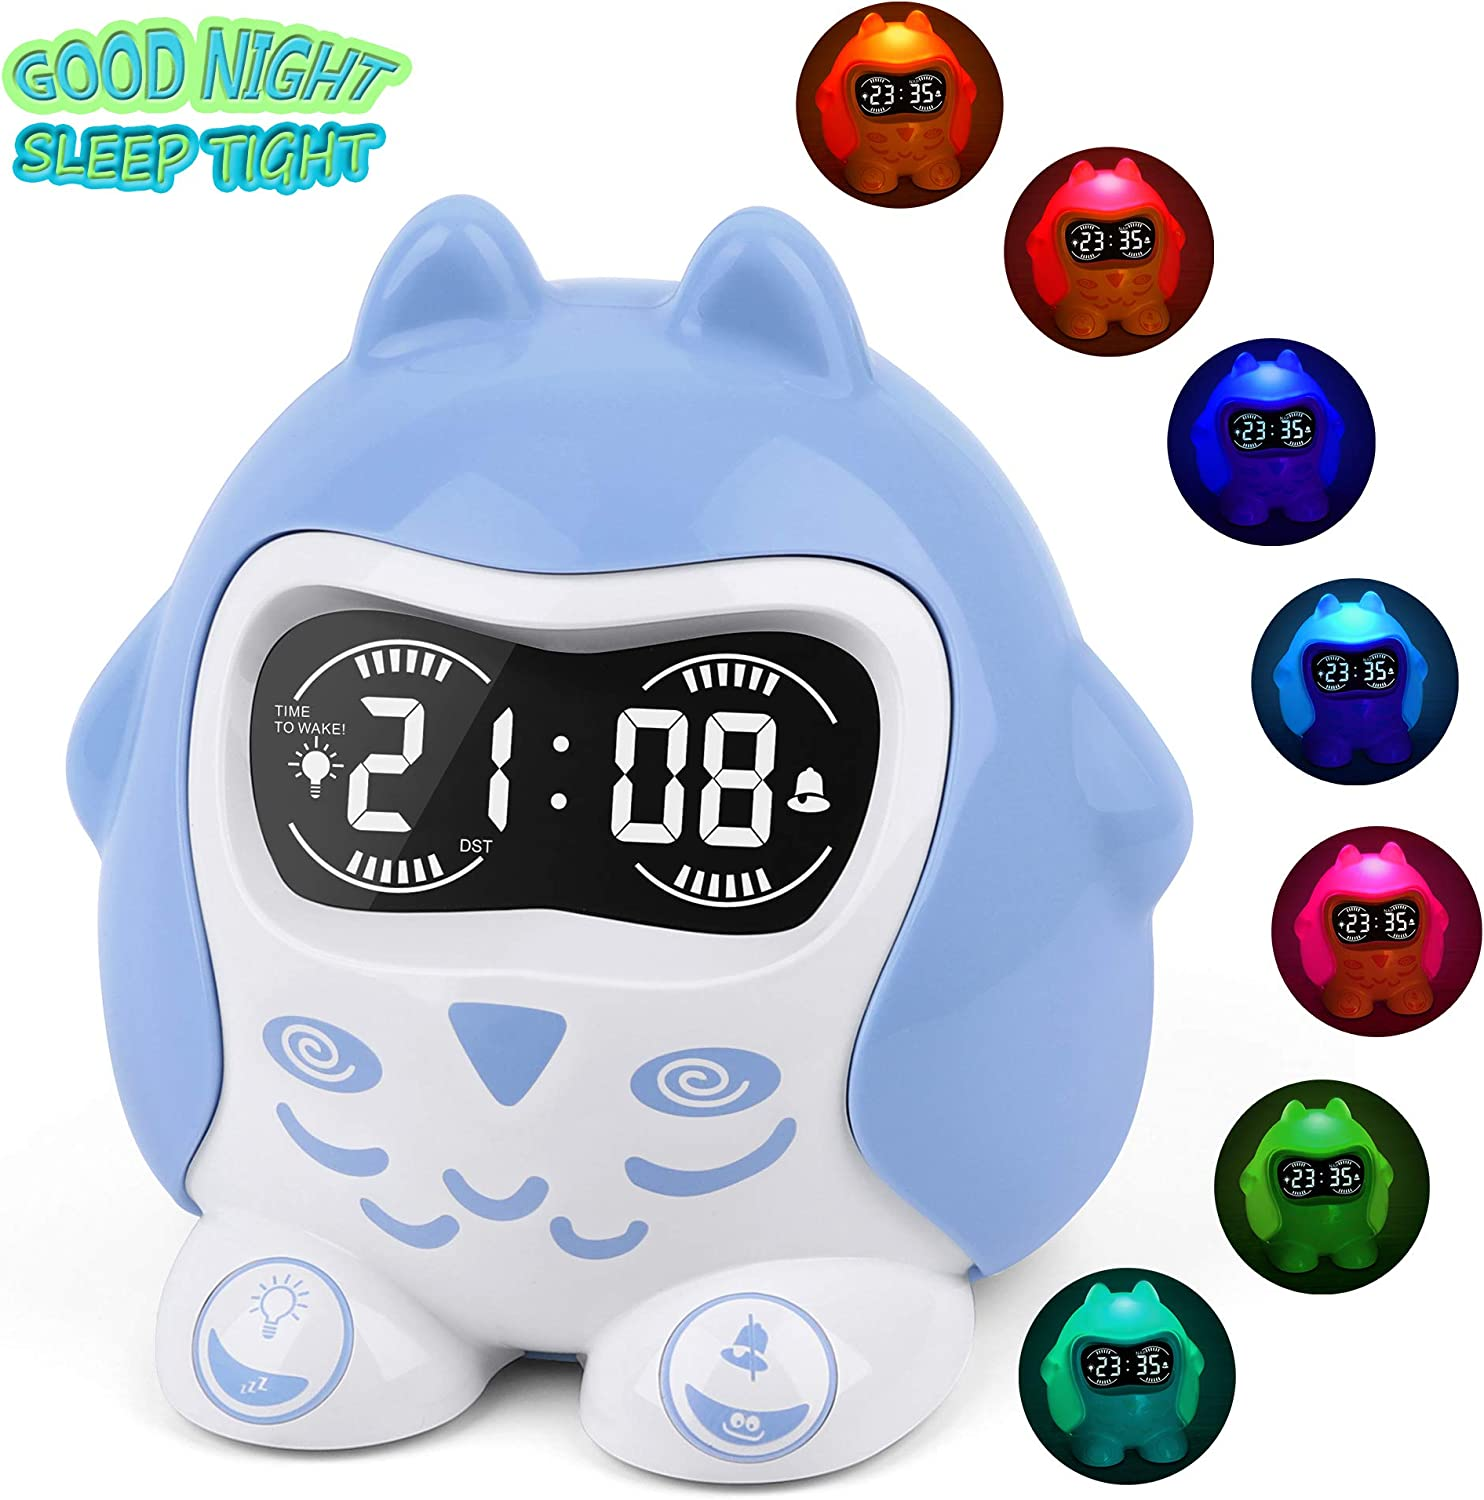 White Noise Machine, Sleep Soother Sound Therapy with 9 Sounds Lullaby, 7-Color Night Light, Plug In Battery Powered, Sleep Training Time to Wake Digital Alarm Clock for Kids Baby Girls Boys Bedroom